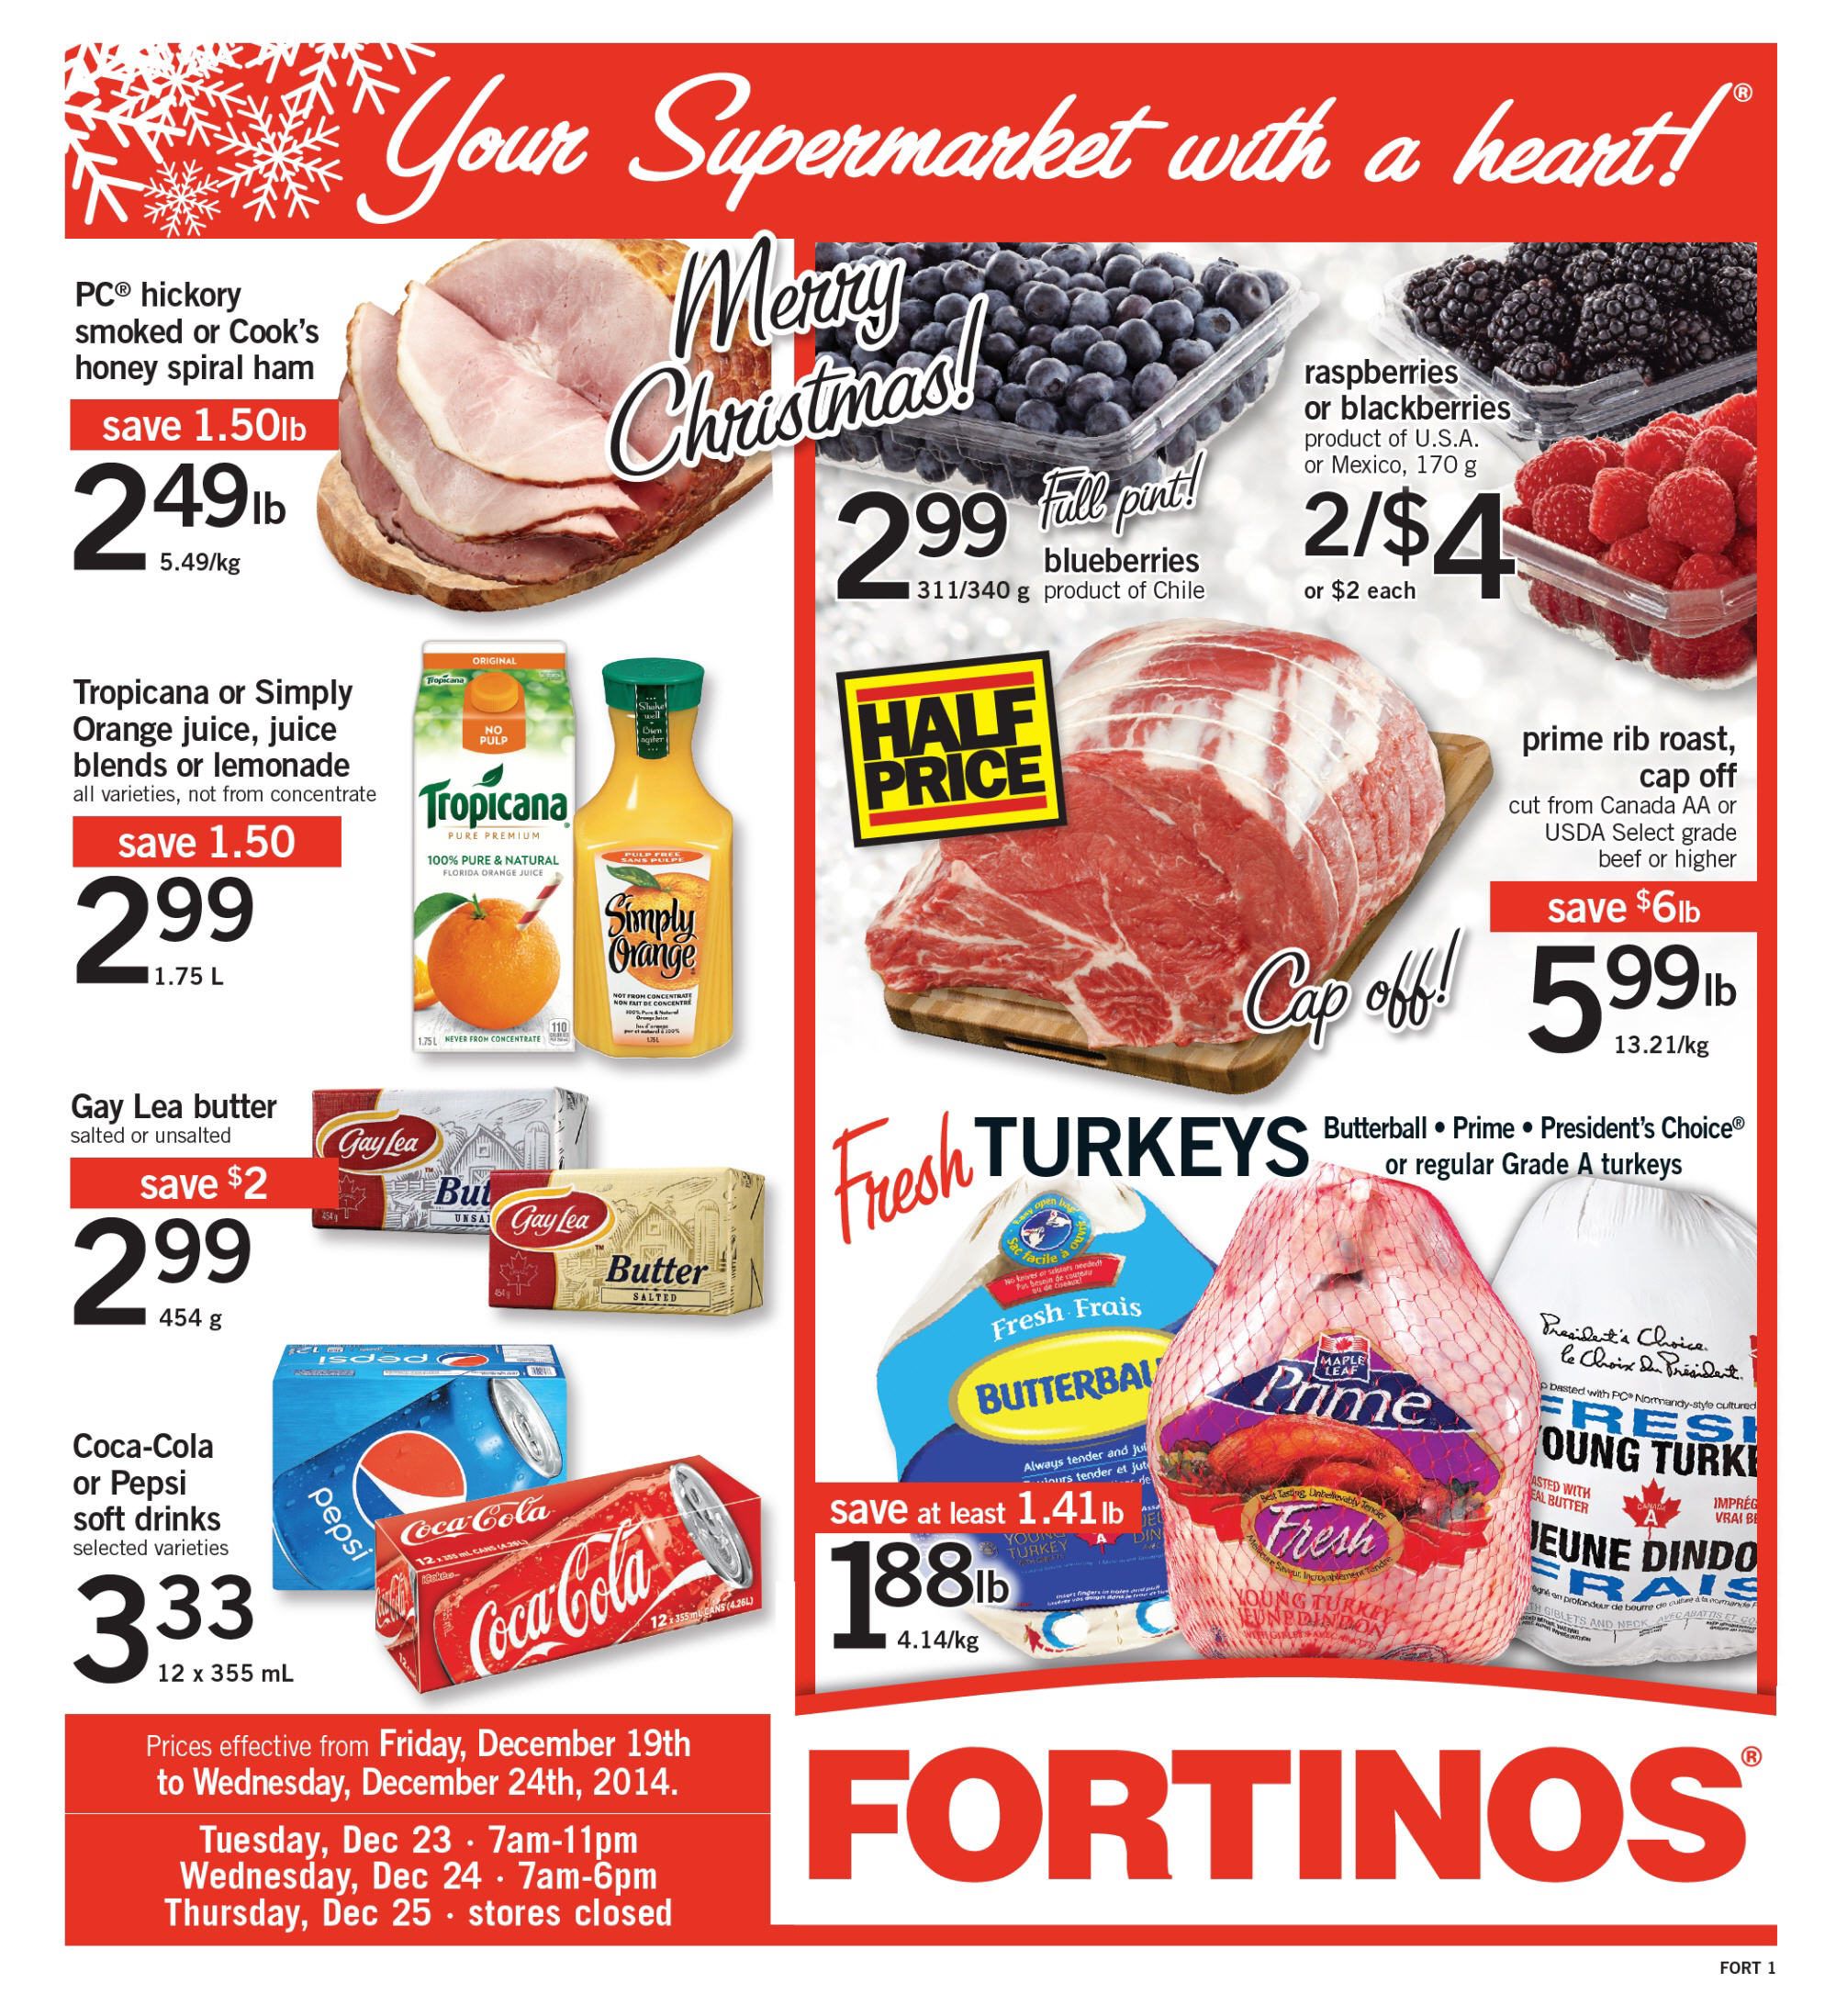 Fortinos Weekly Flyer Weekly Merry Christmas Dec 19